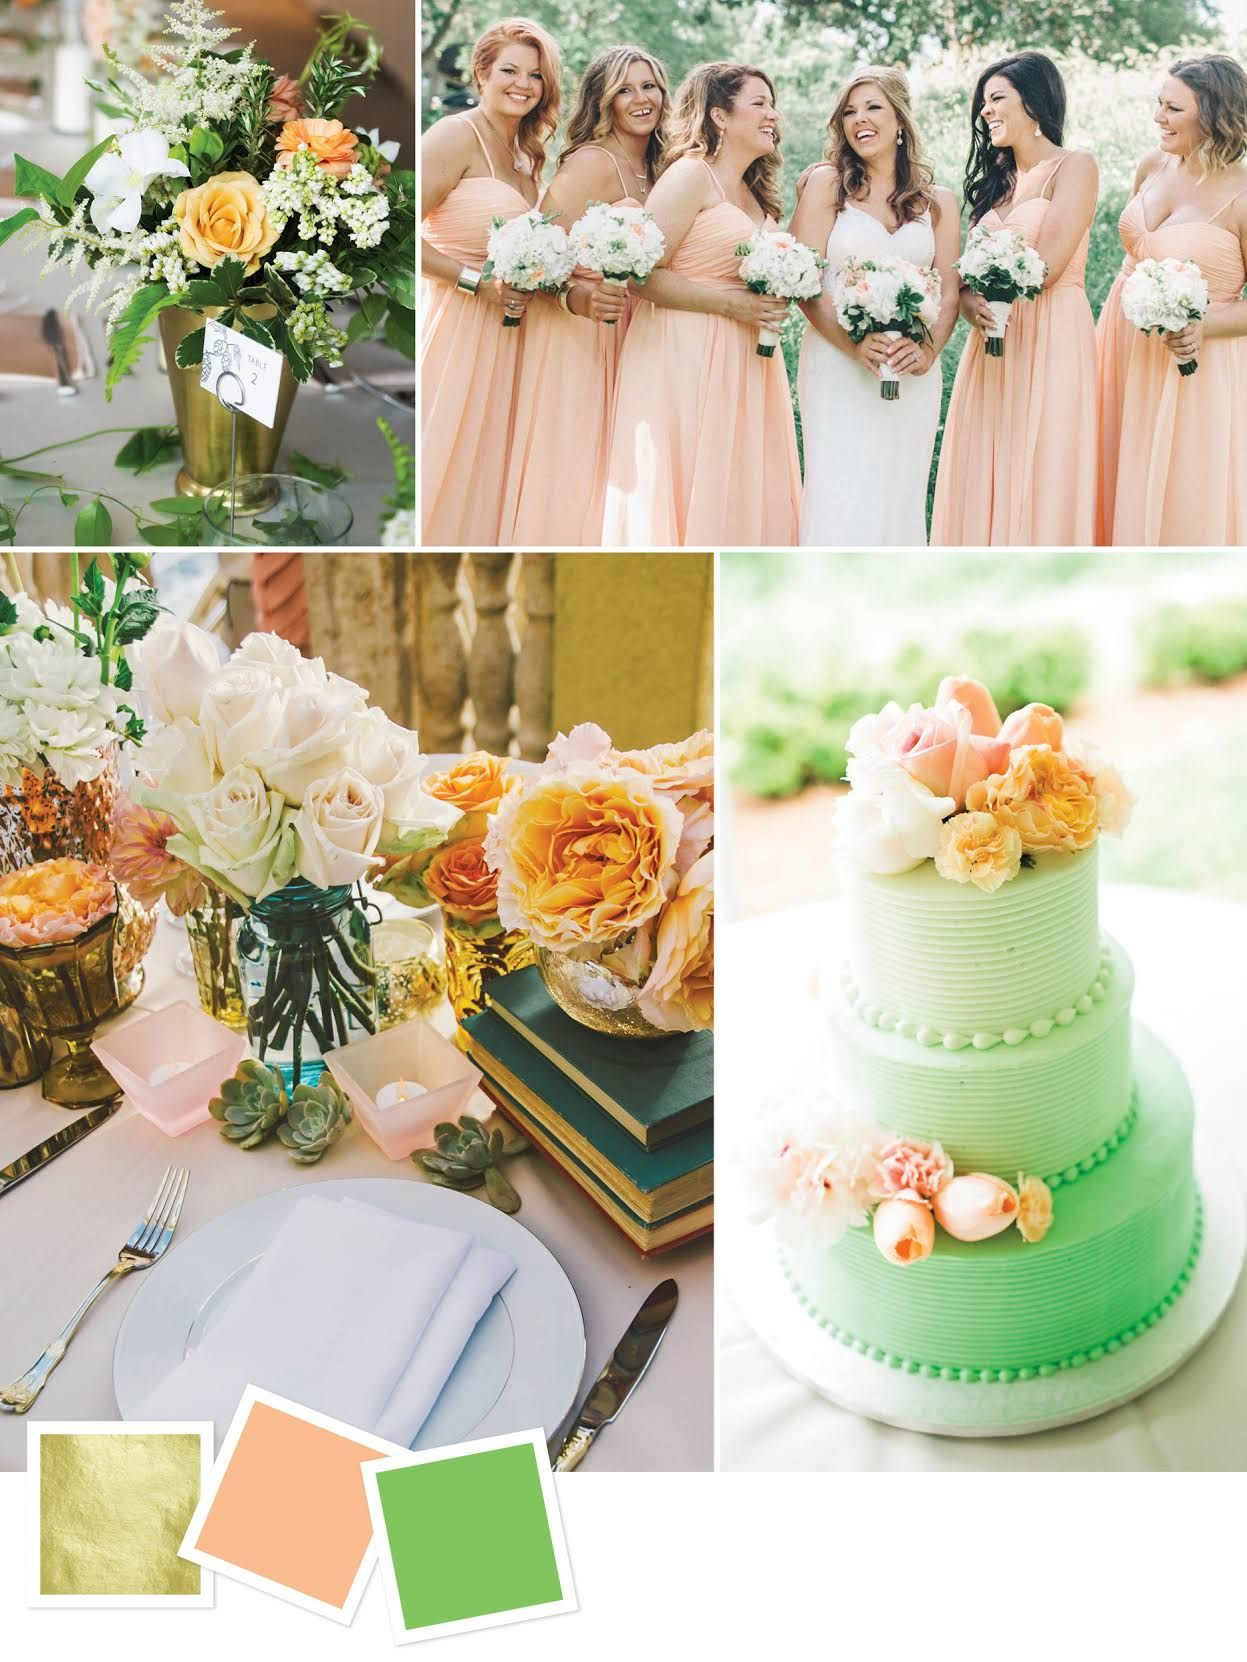 Gold + Peach + Green Good For: Outdoor Summer Wedding Themes